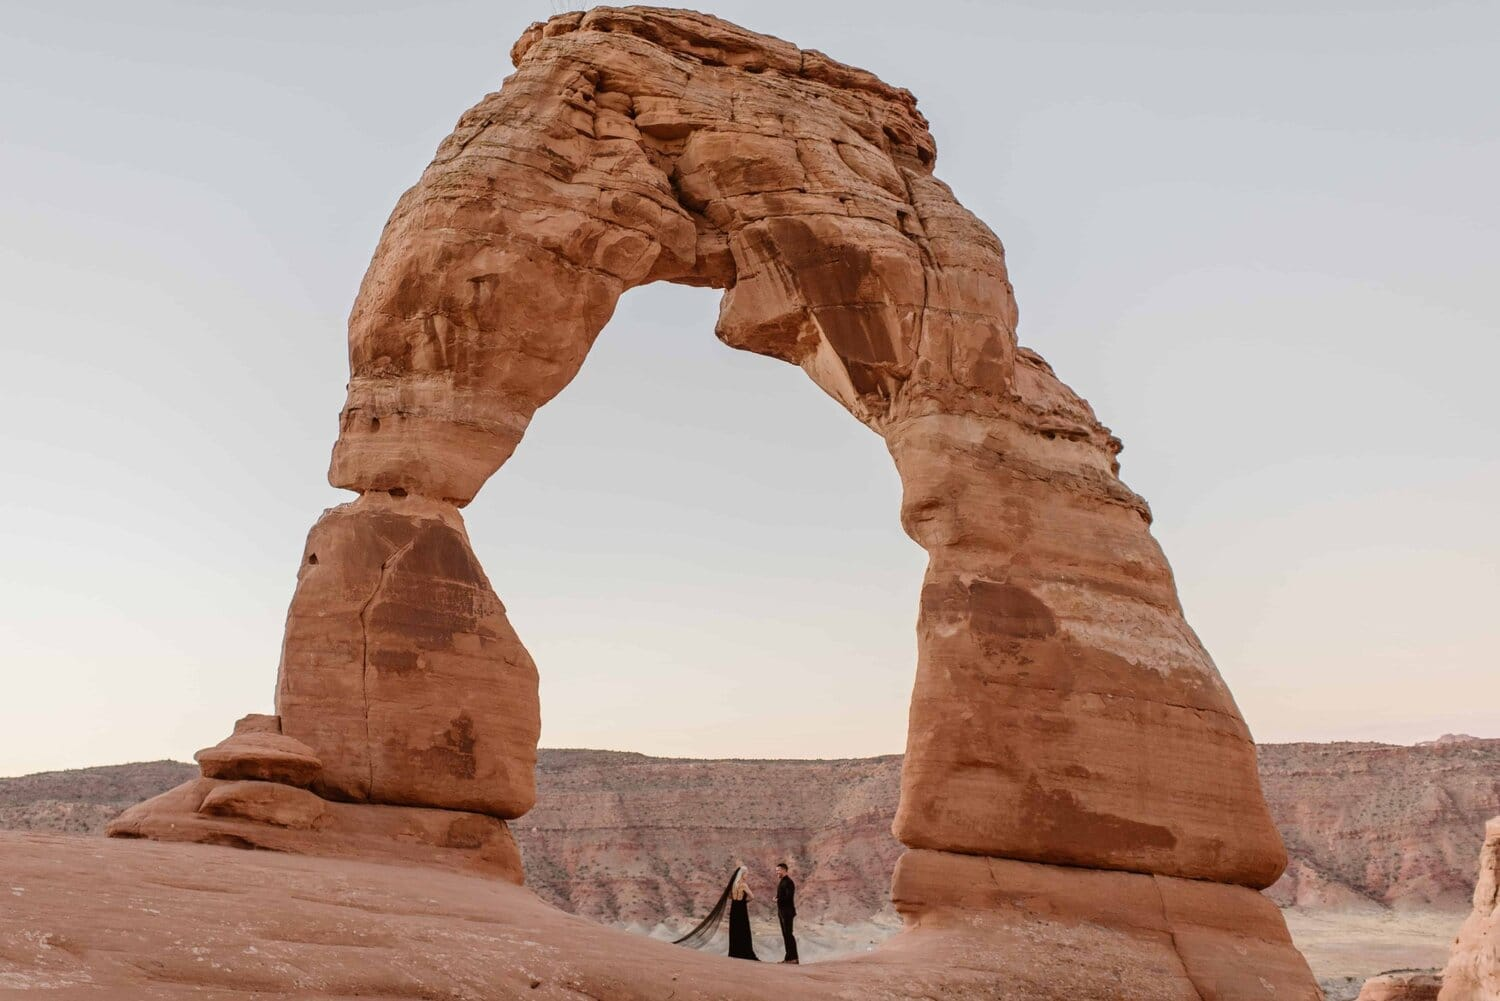 Bride and groom wear black wedding attire while standing underneath an arch for their wedding ceremony.